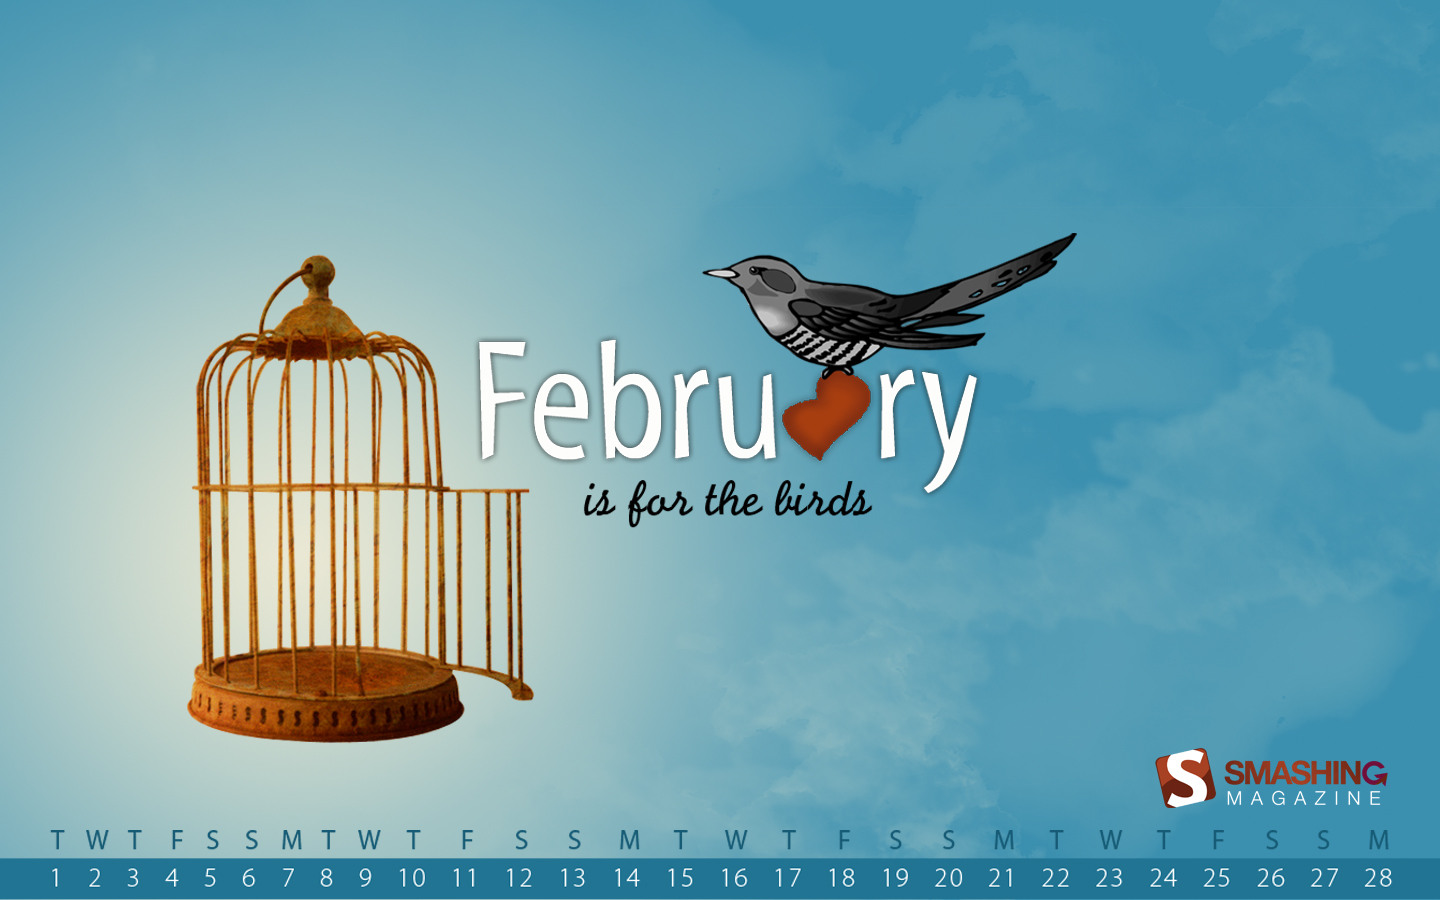 Calendar Wallpaper of the month 21008